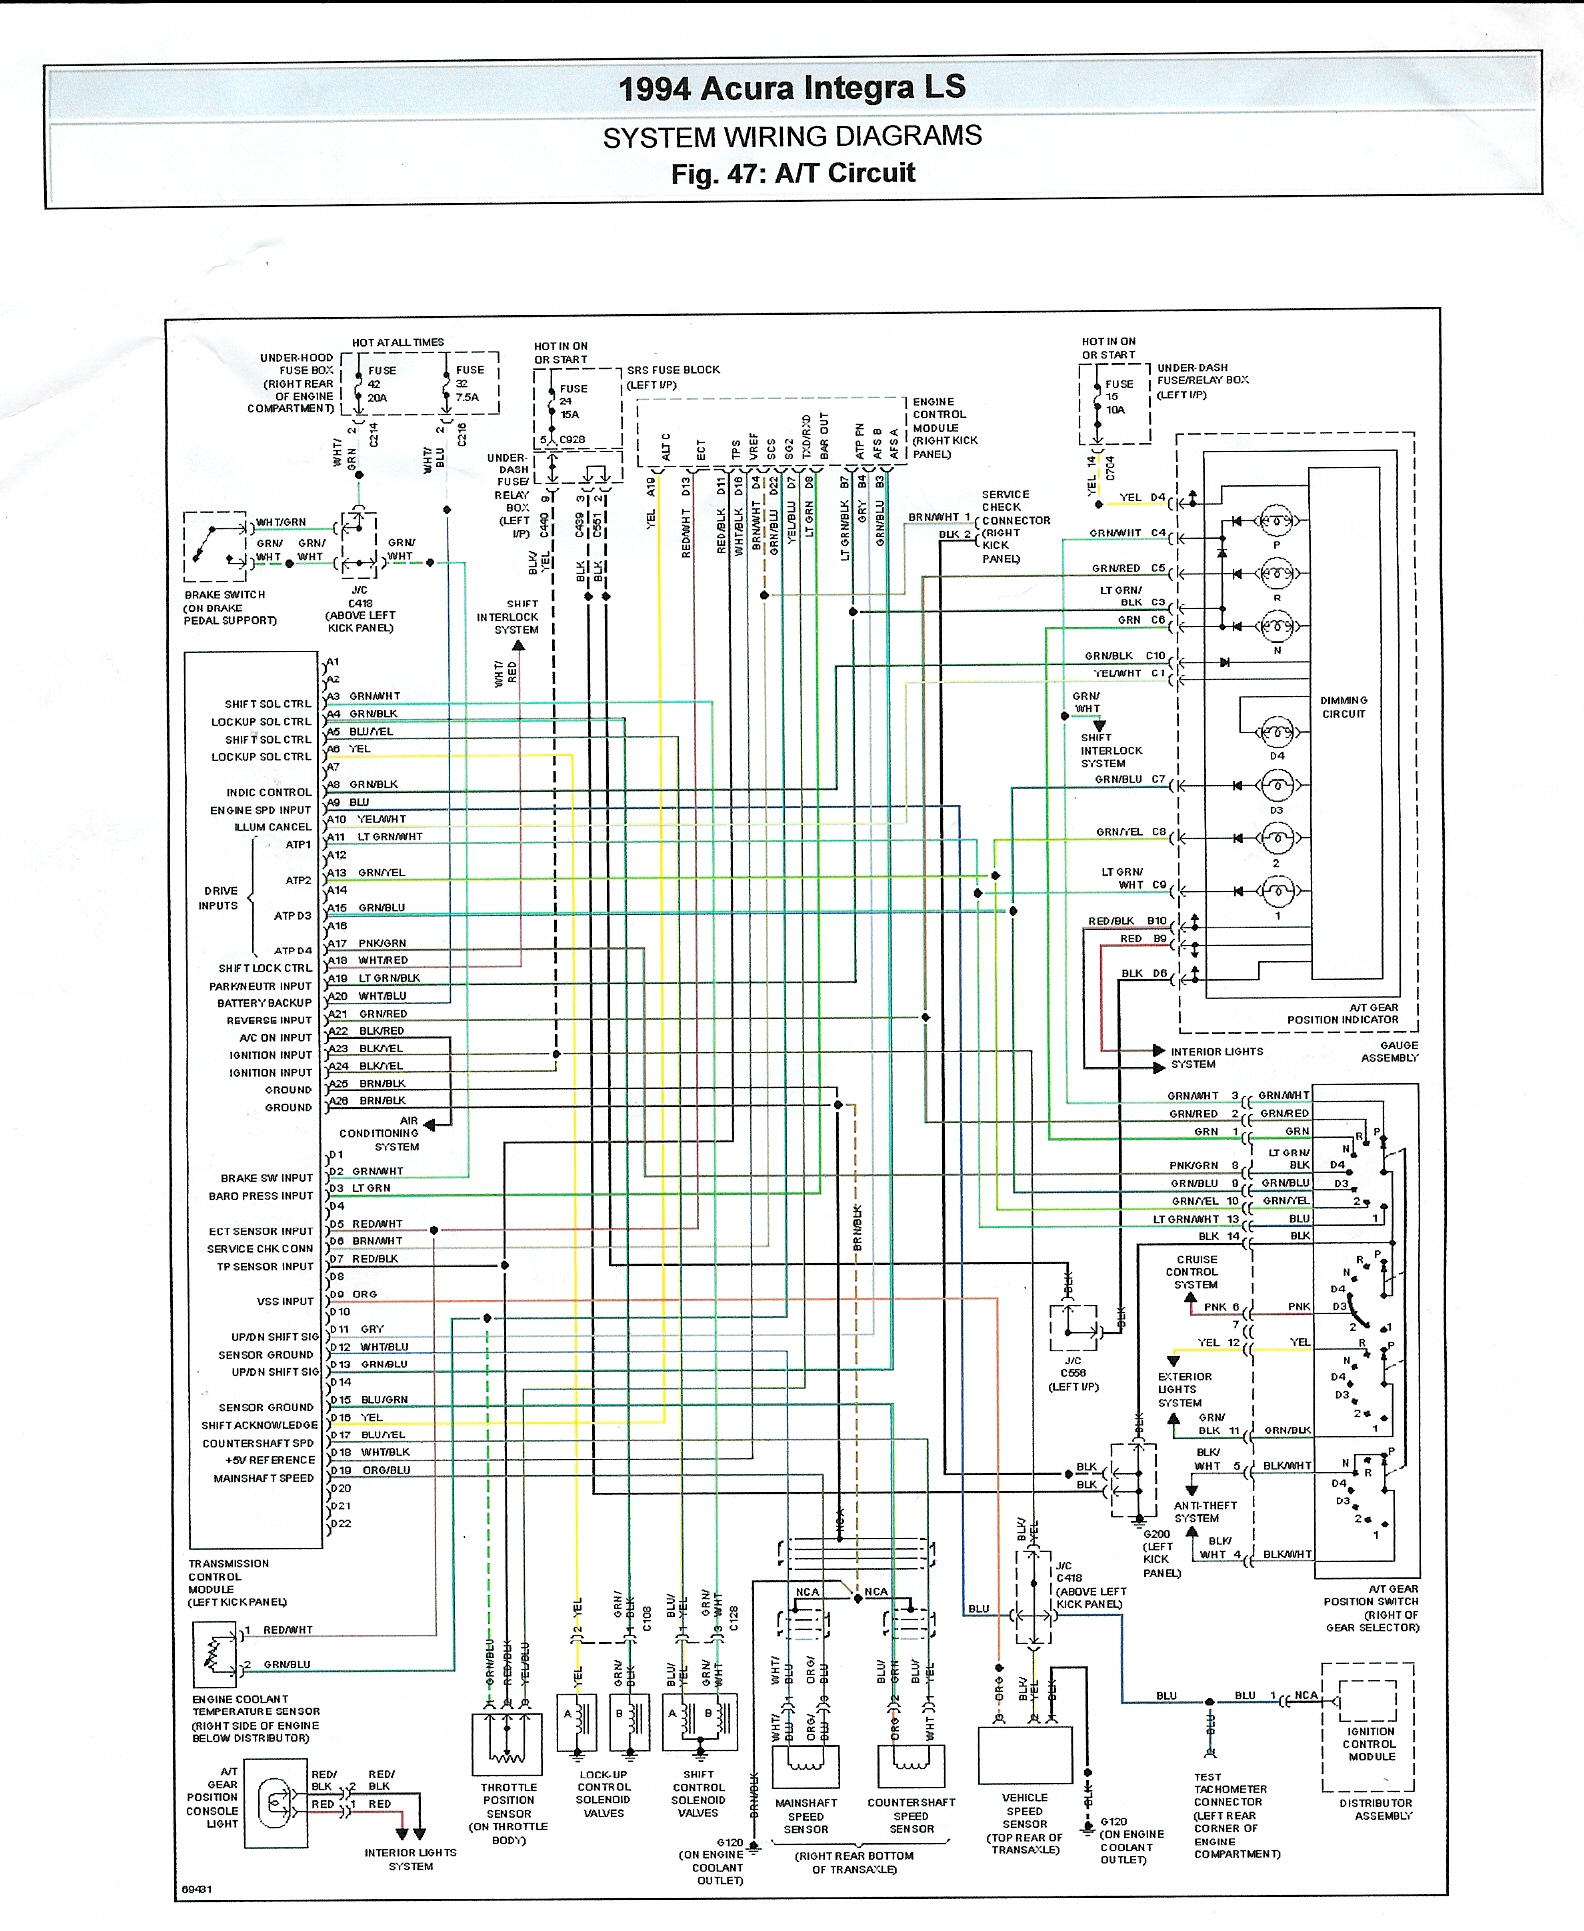 91 Acura Legend Stereo Wiring Diagram Schematic Mercedes Benz Sprinter 1989 Diagramscar Engine 1994 Integra Library